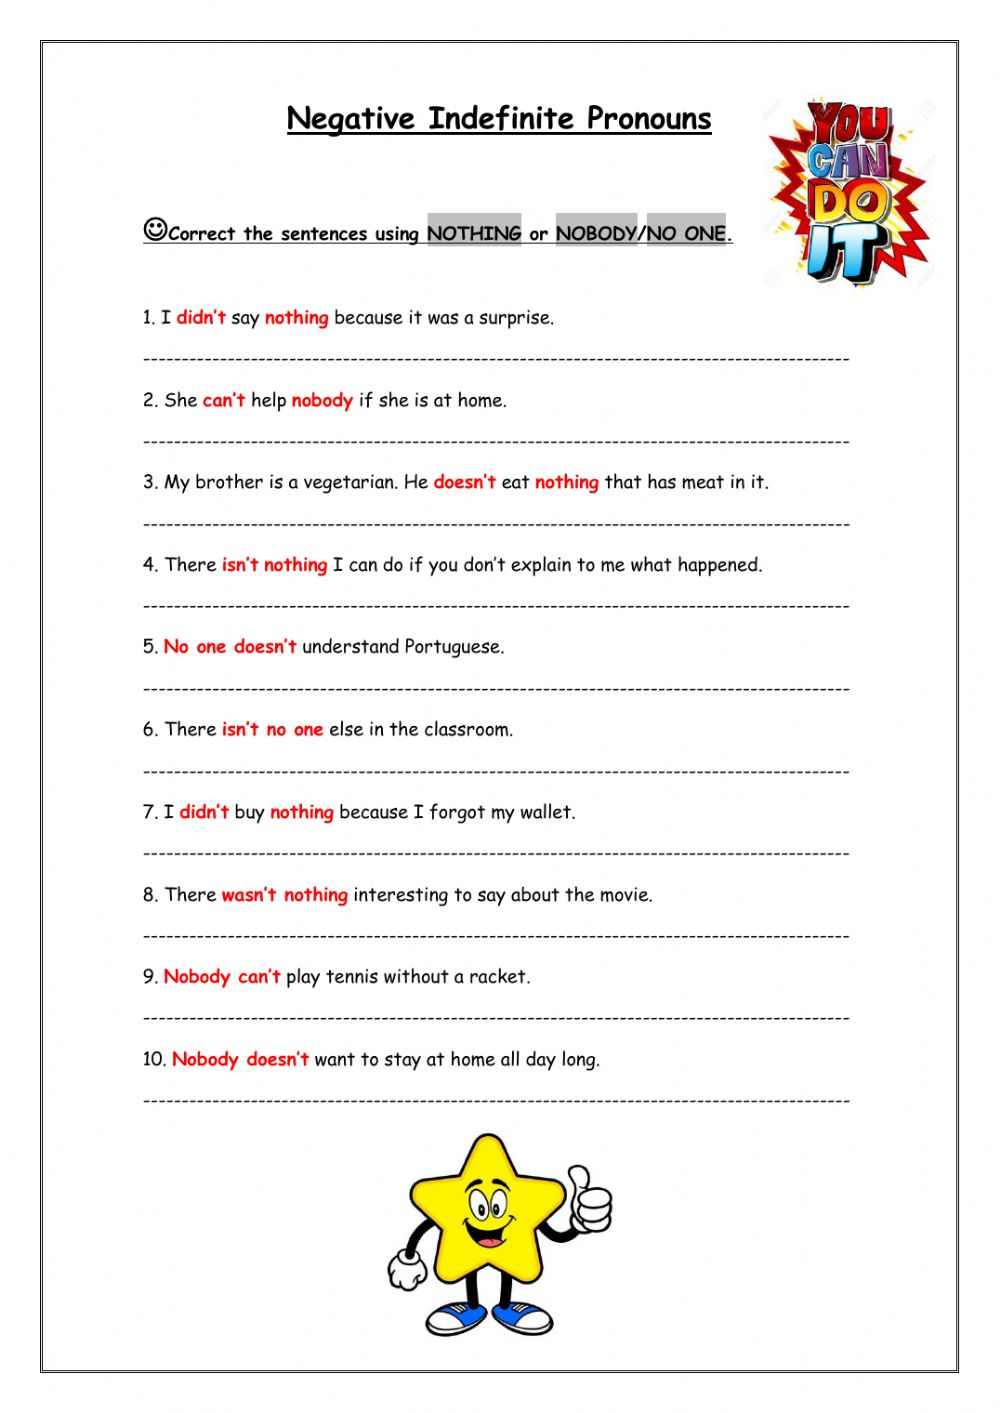 medium resolution of Negative Indefinite Pronouns worksheet